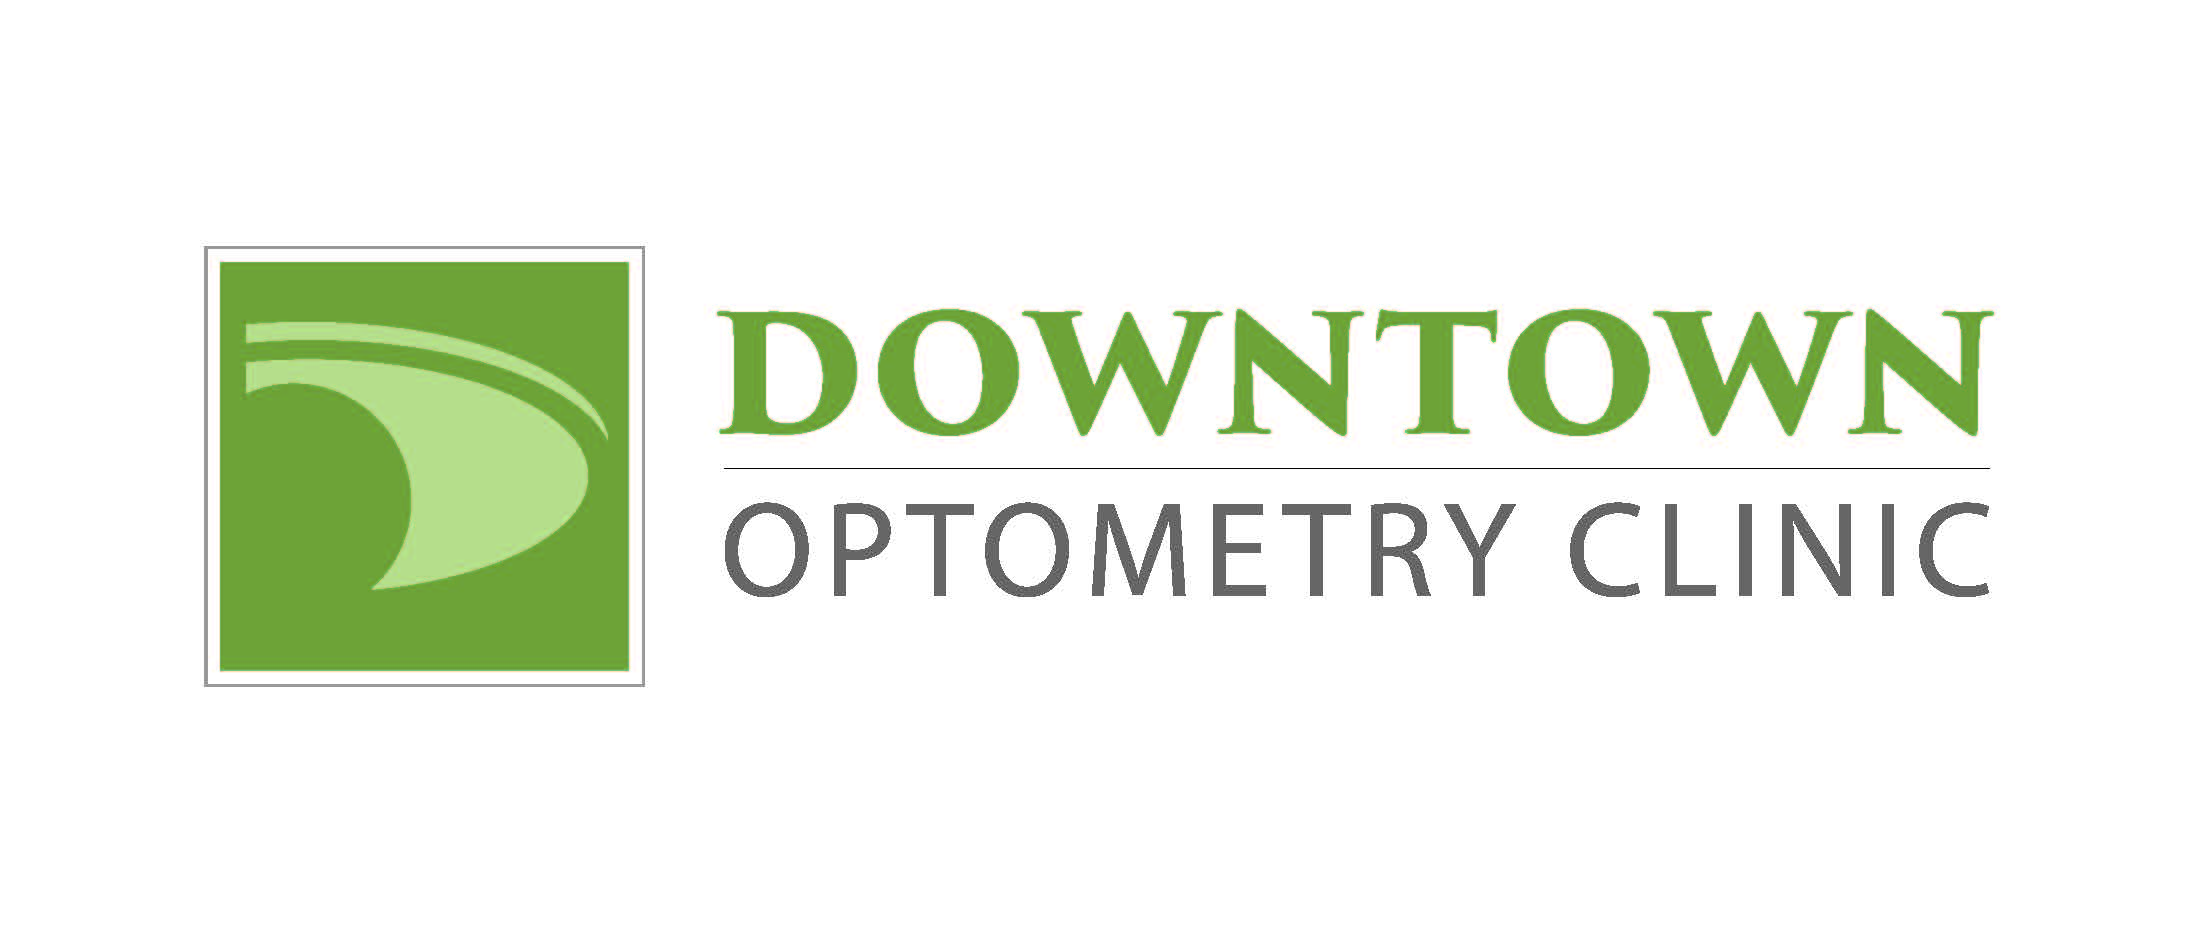 Downtown Optomerty Clinic